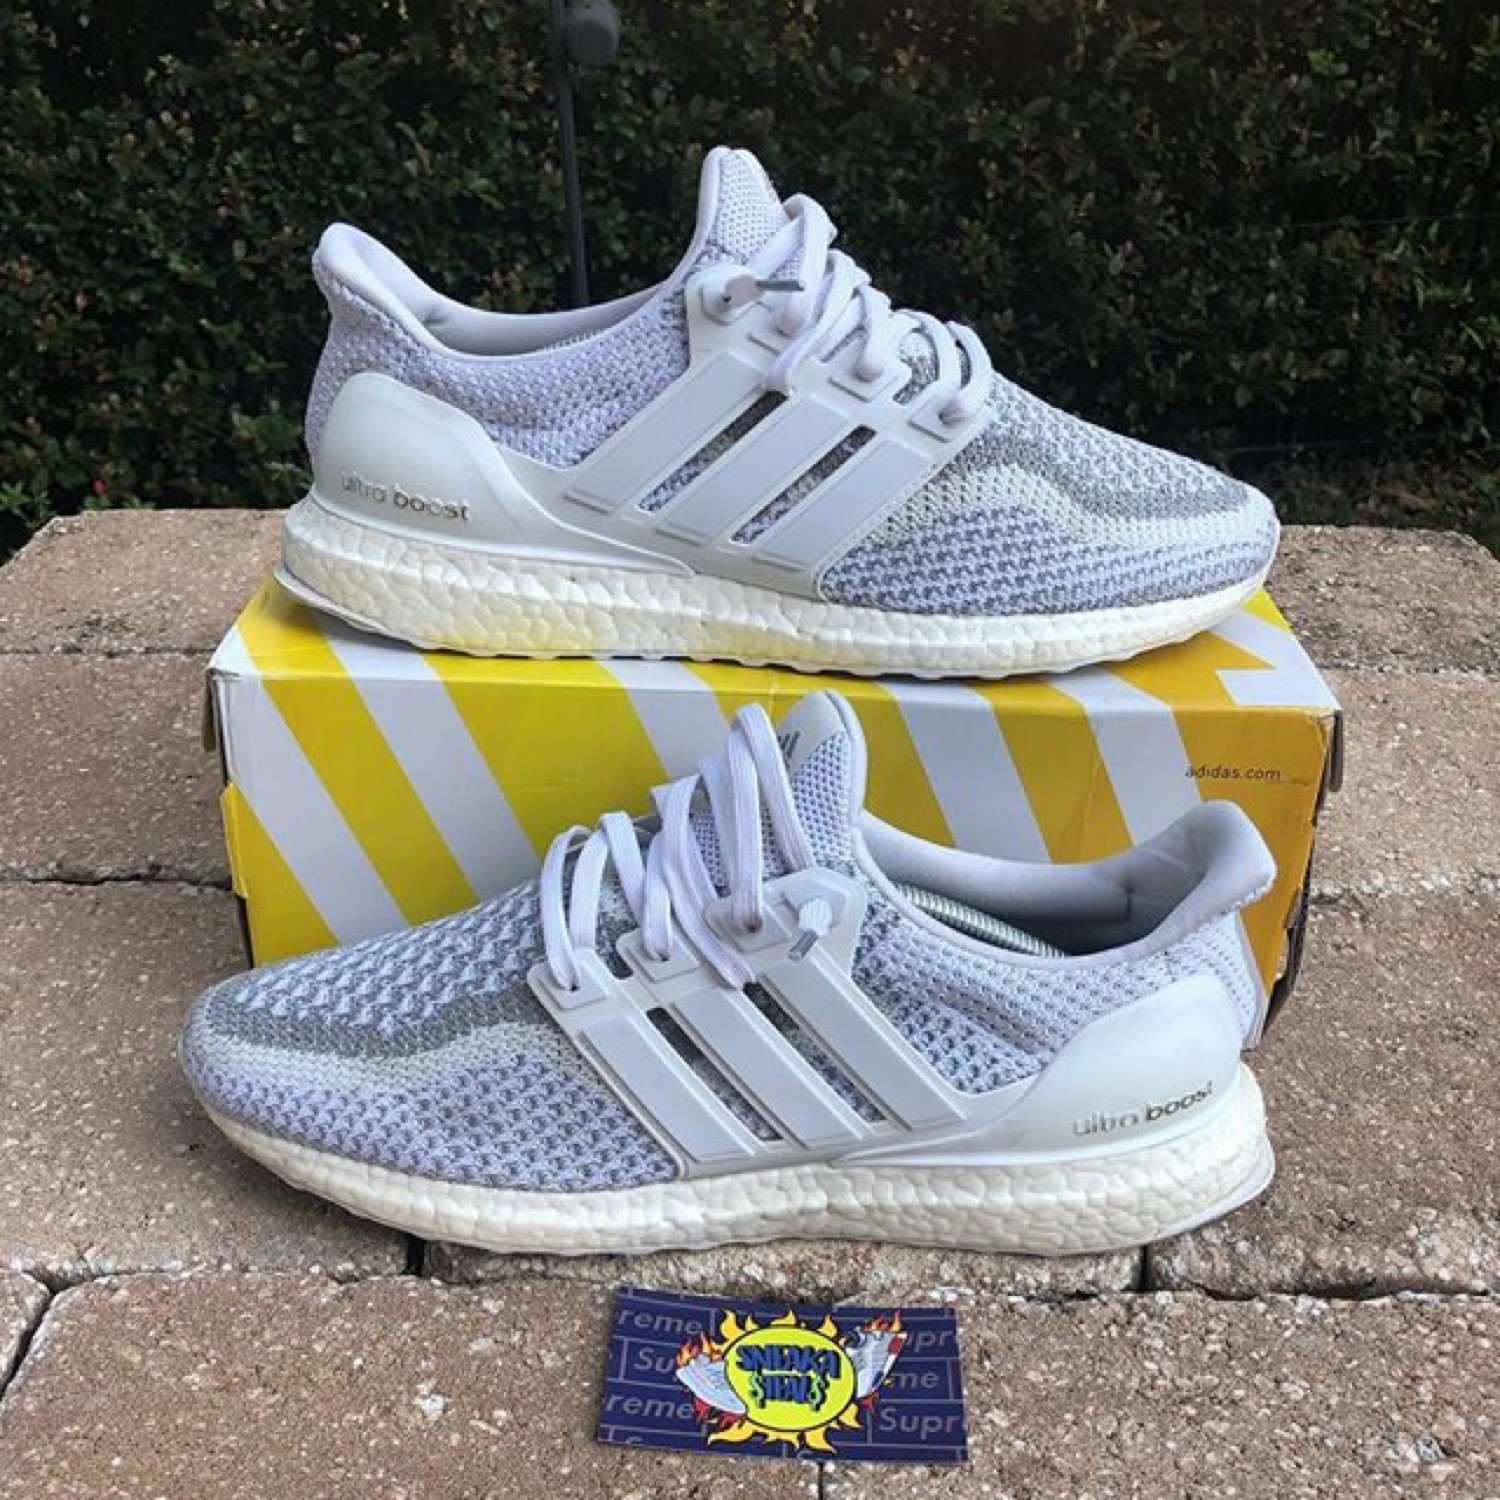 Adidas Ultra Boost 2.0 Reflective